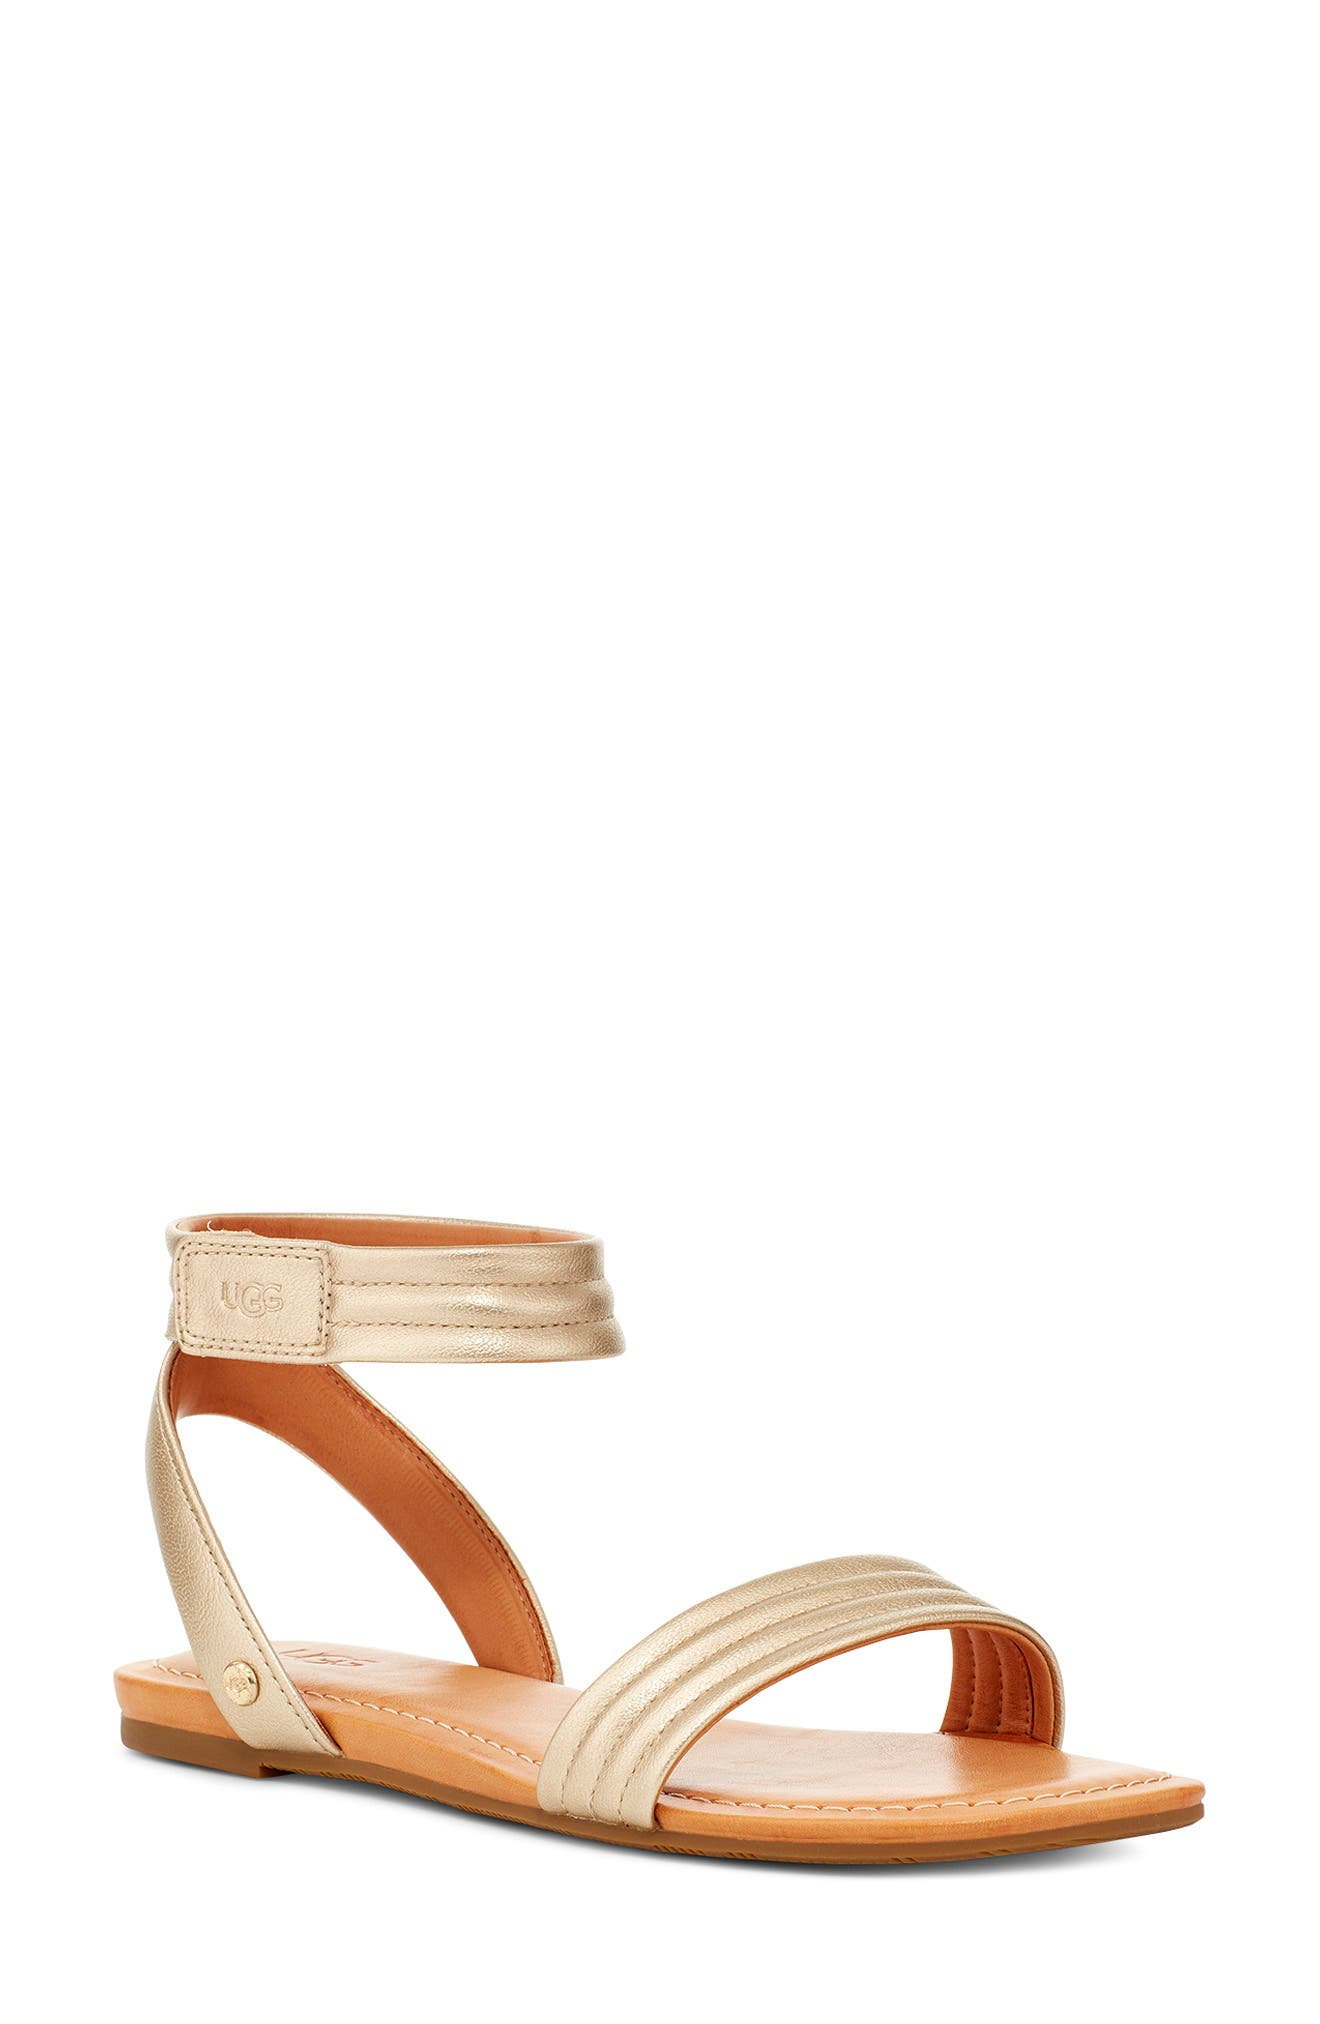 Channel quilting textures the straps of a breezy metallic sandal furnished with a cushy footbed that provides all-day comfort. Style Name: UGG Ethena Metallic Ankle Strap Sandal (Women). Style Number: 5999373. Available in stores.